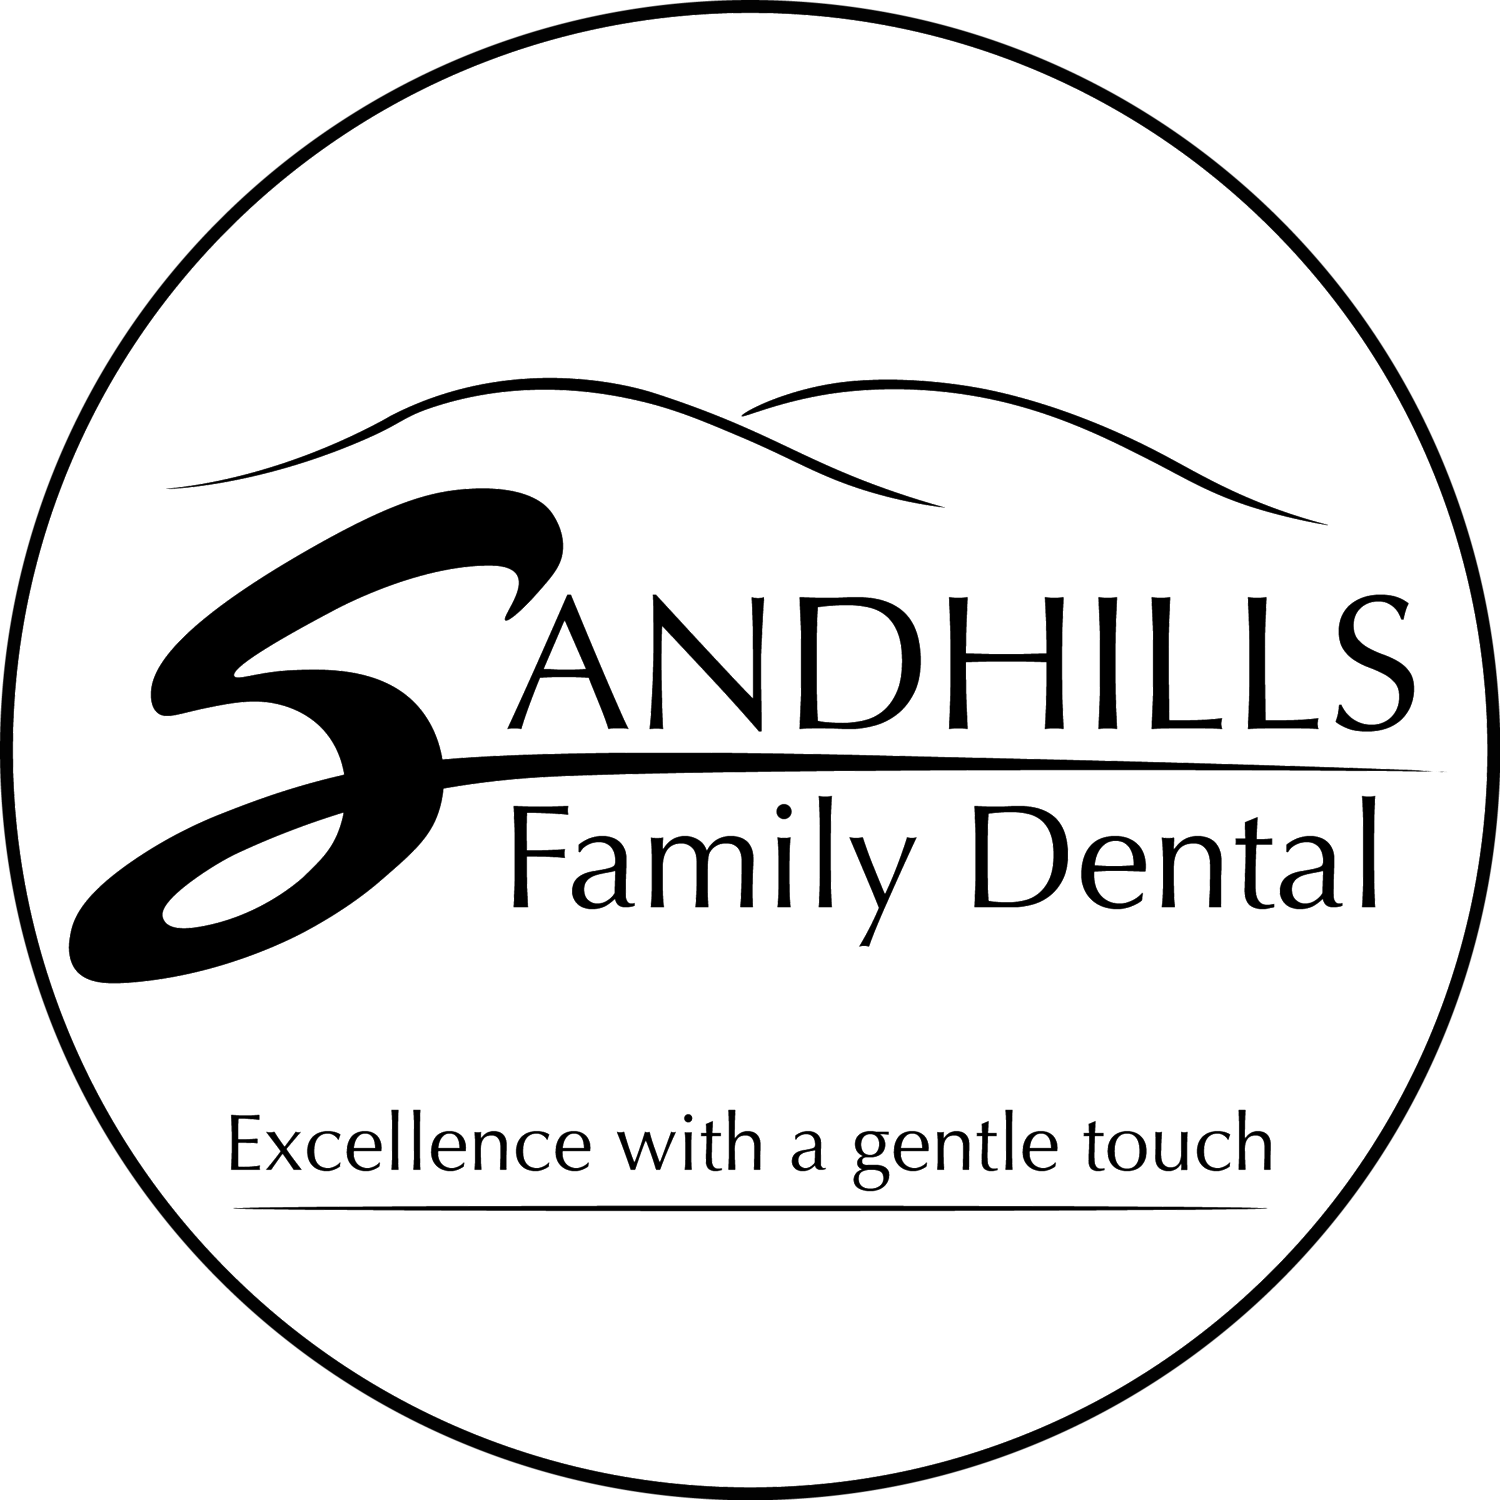 Sandhills Family Dental